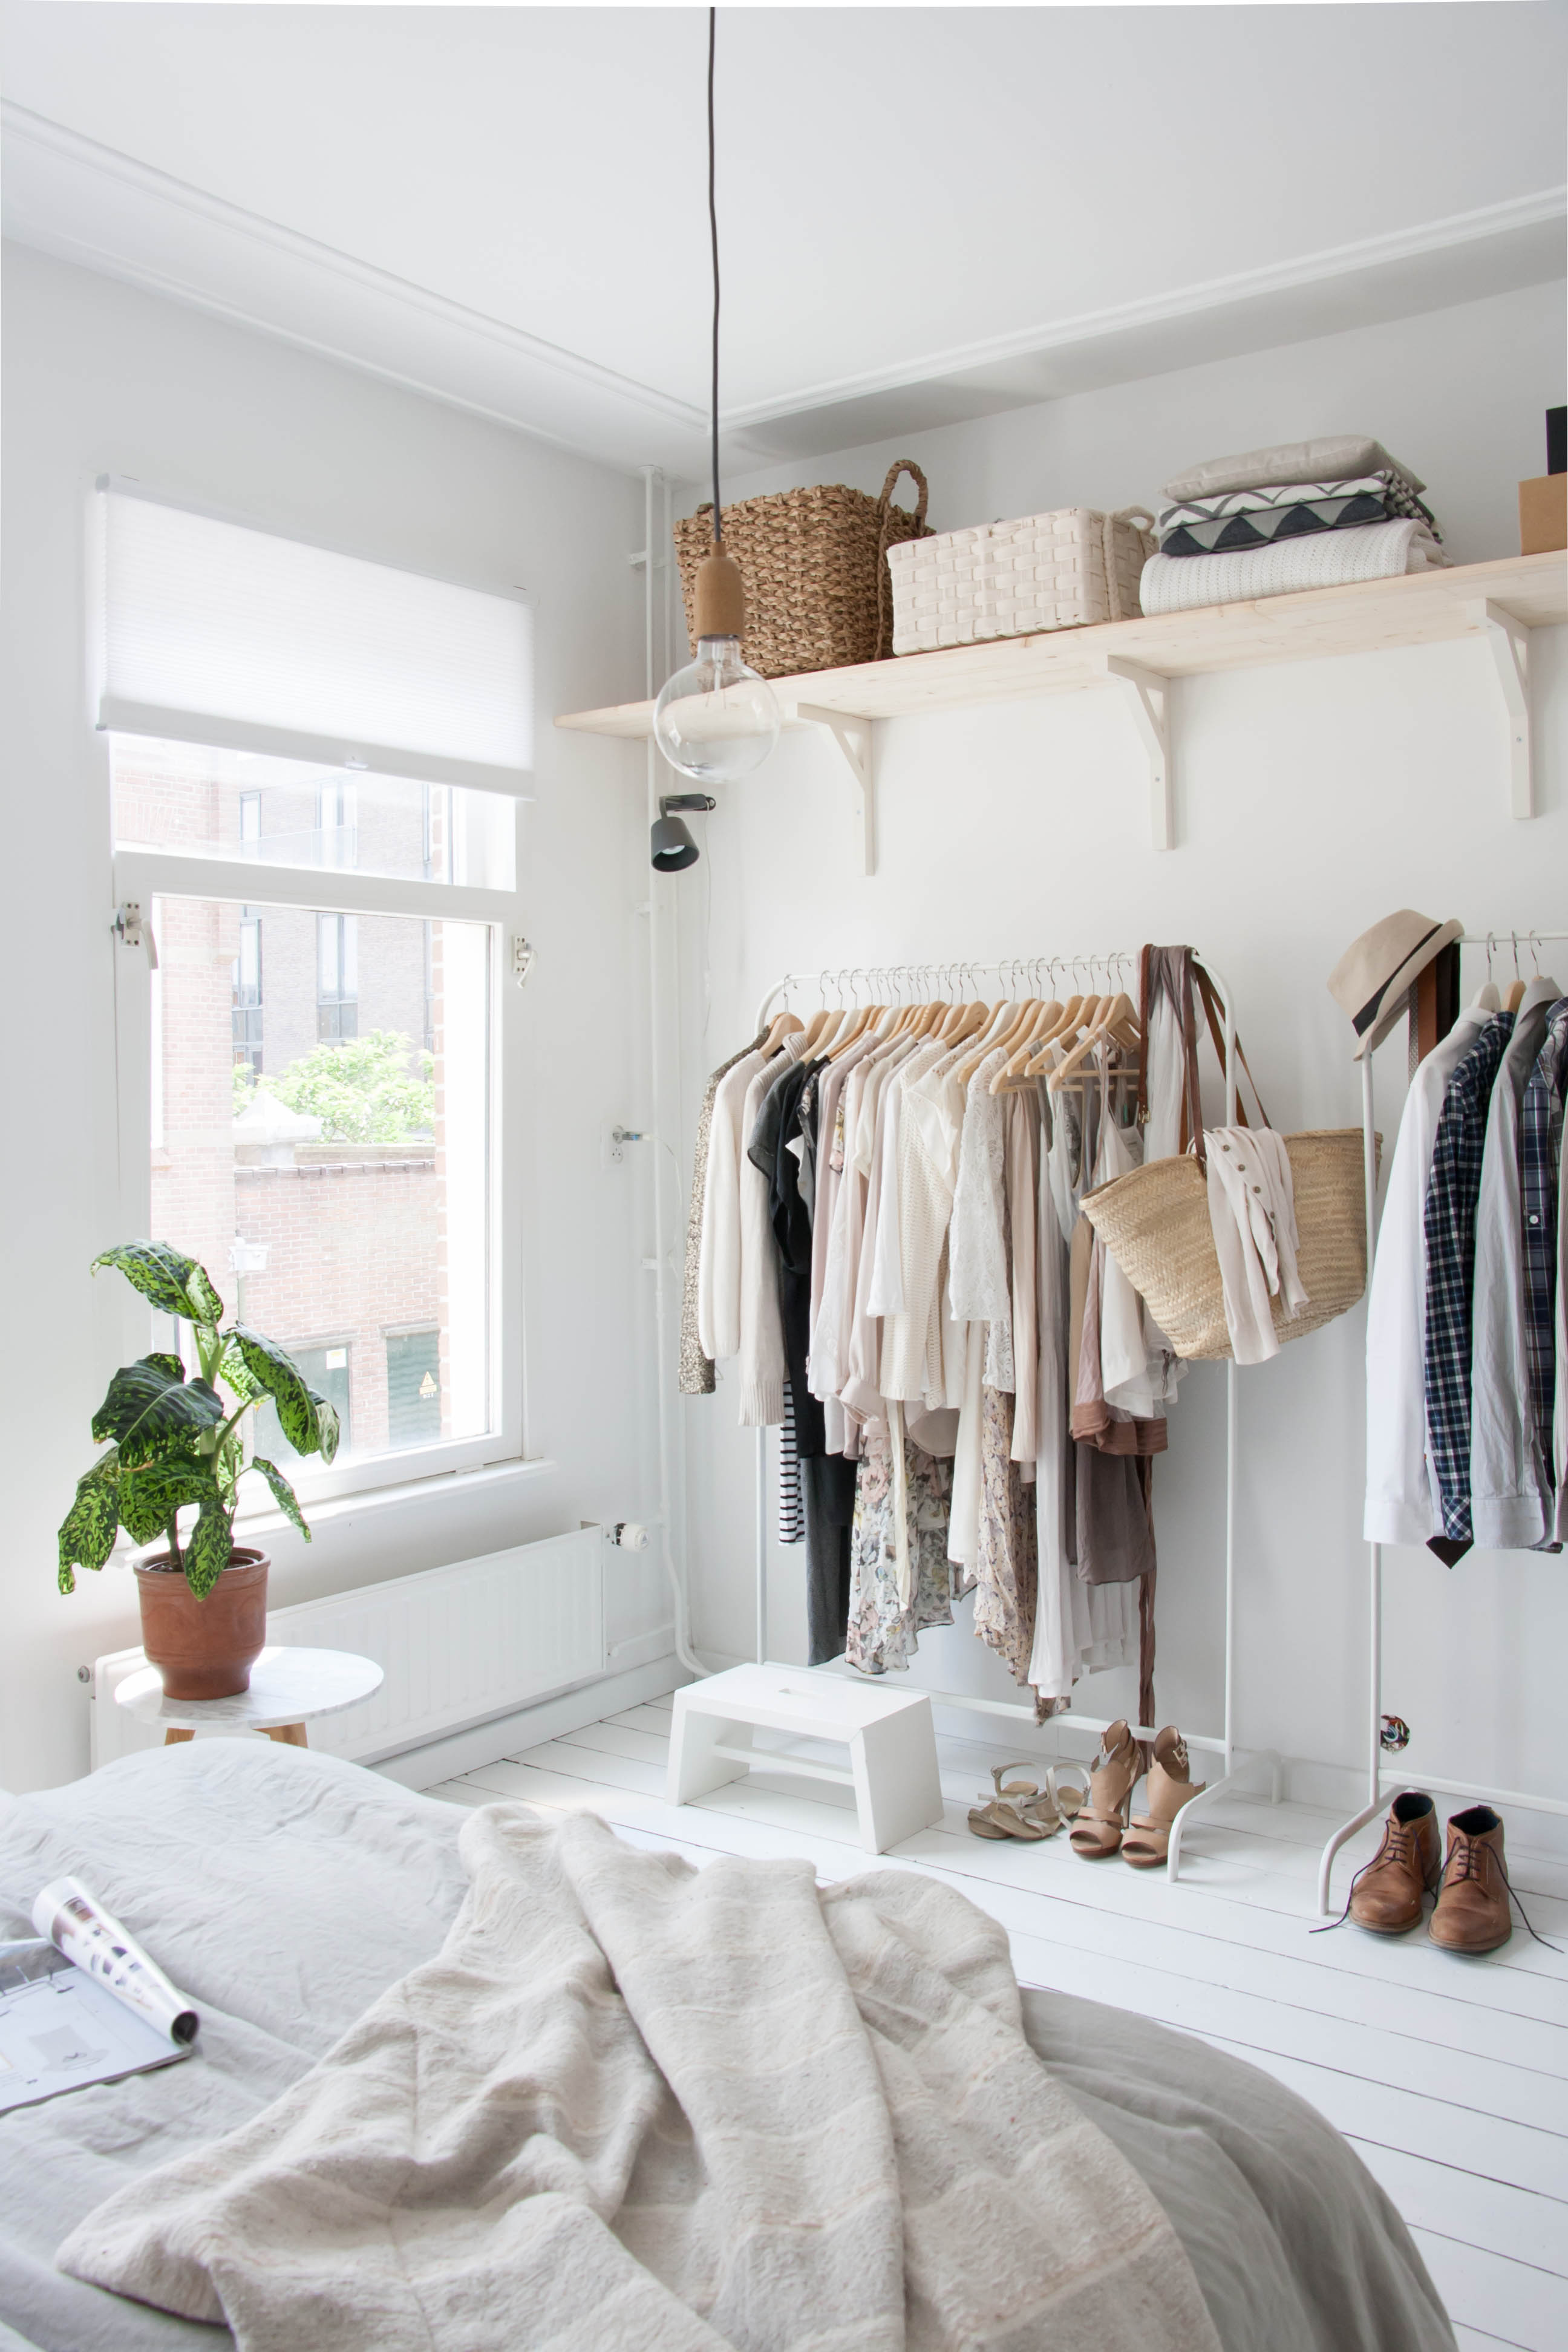 Home Hacks: 12 Clever Closet Makeover Ideas - thegoodstuff